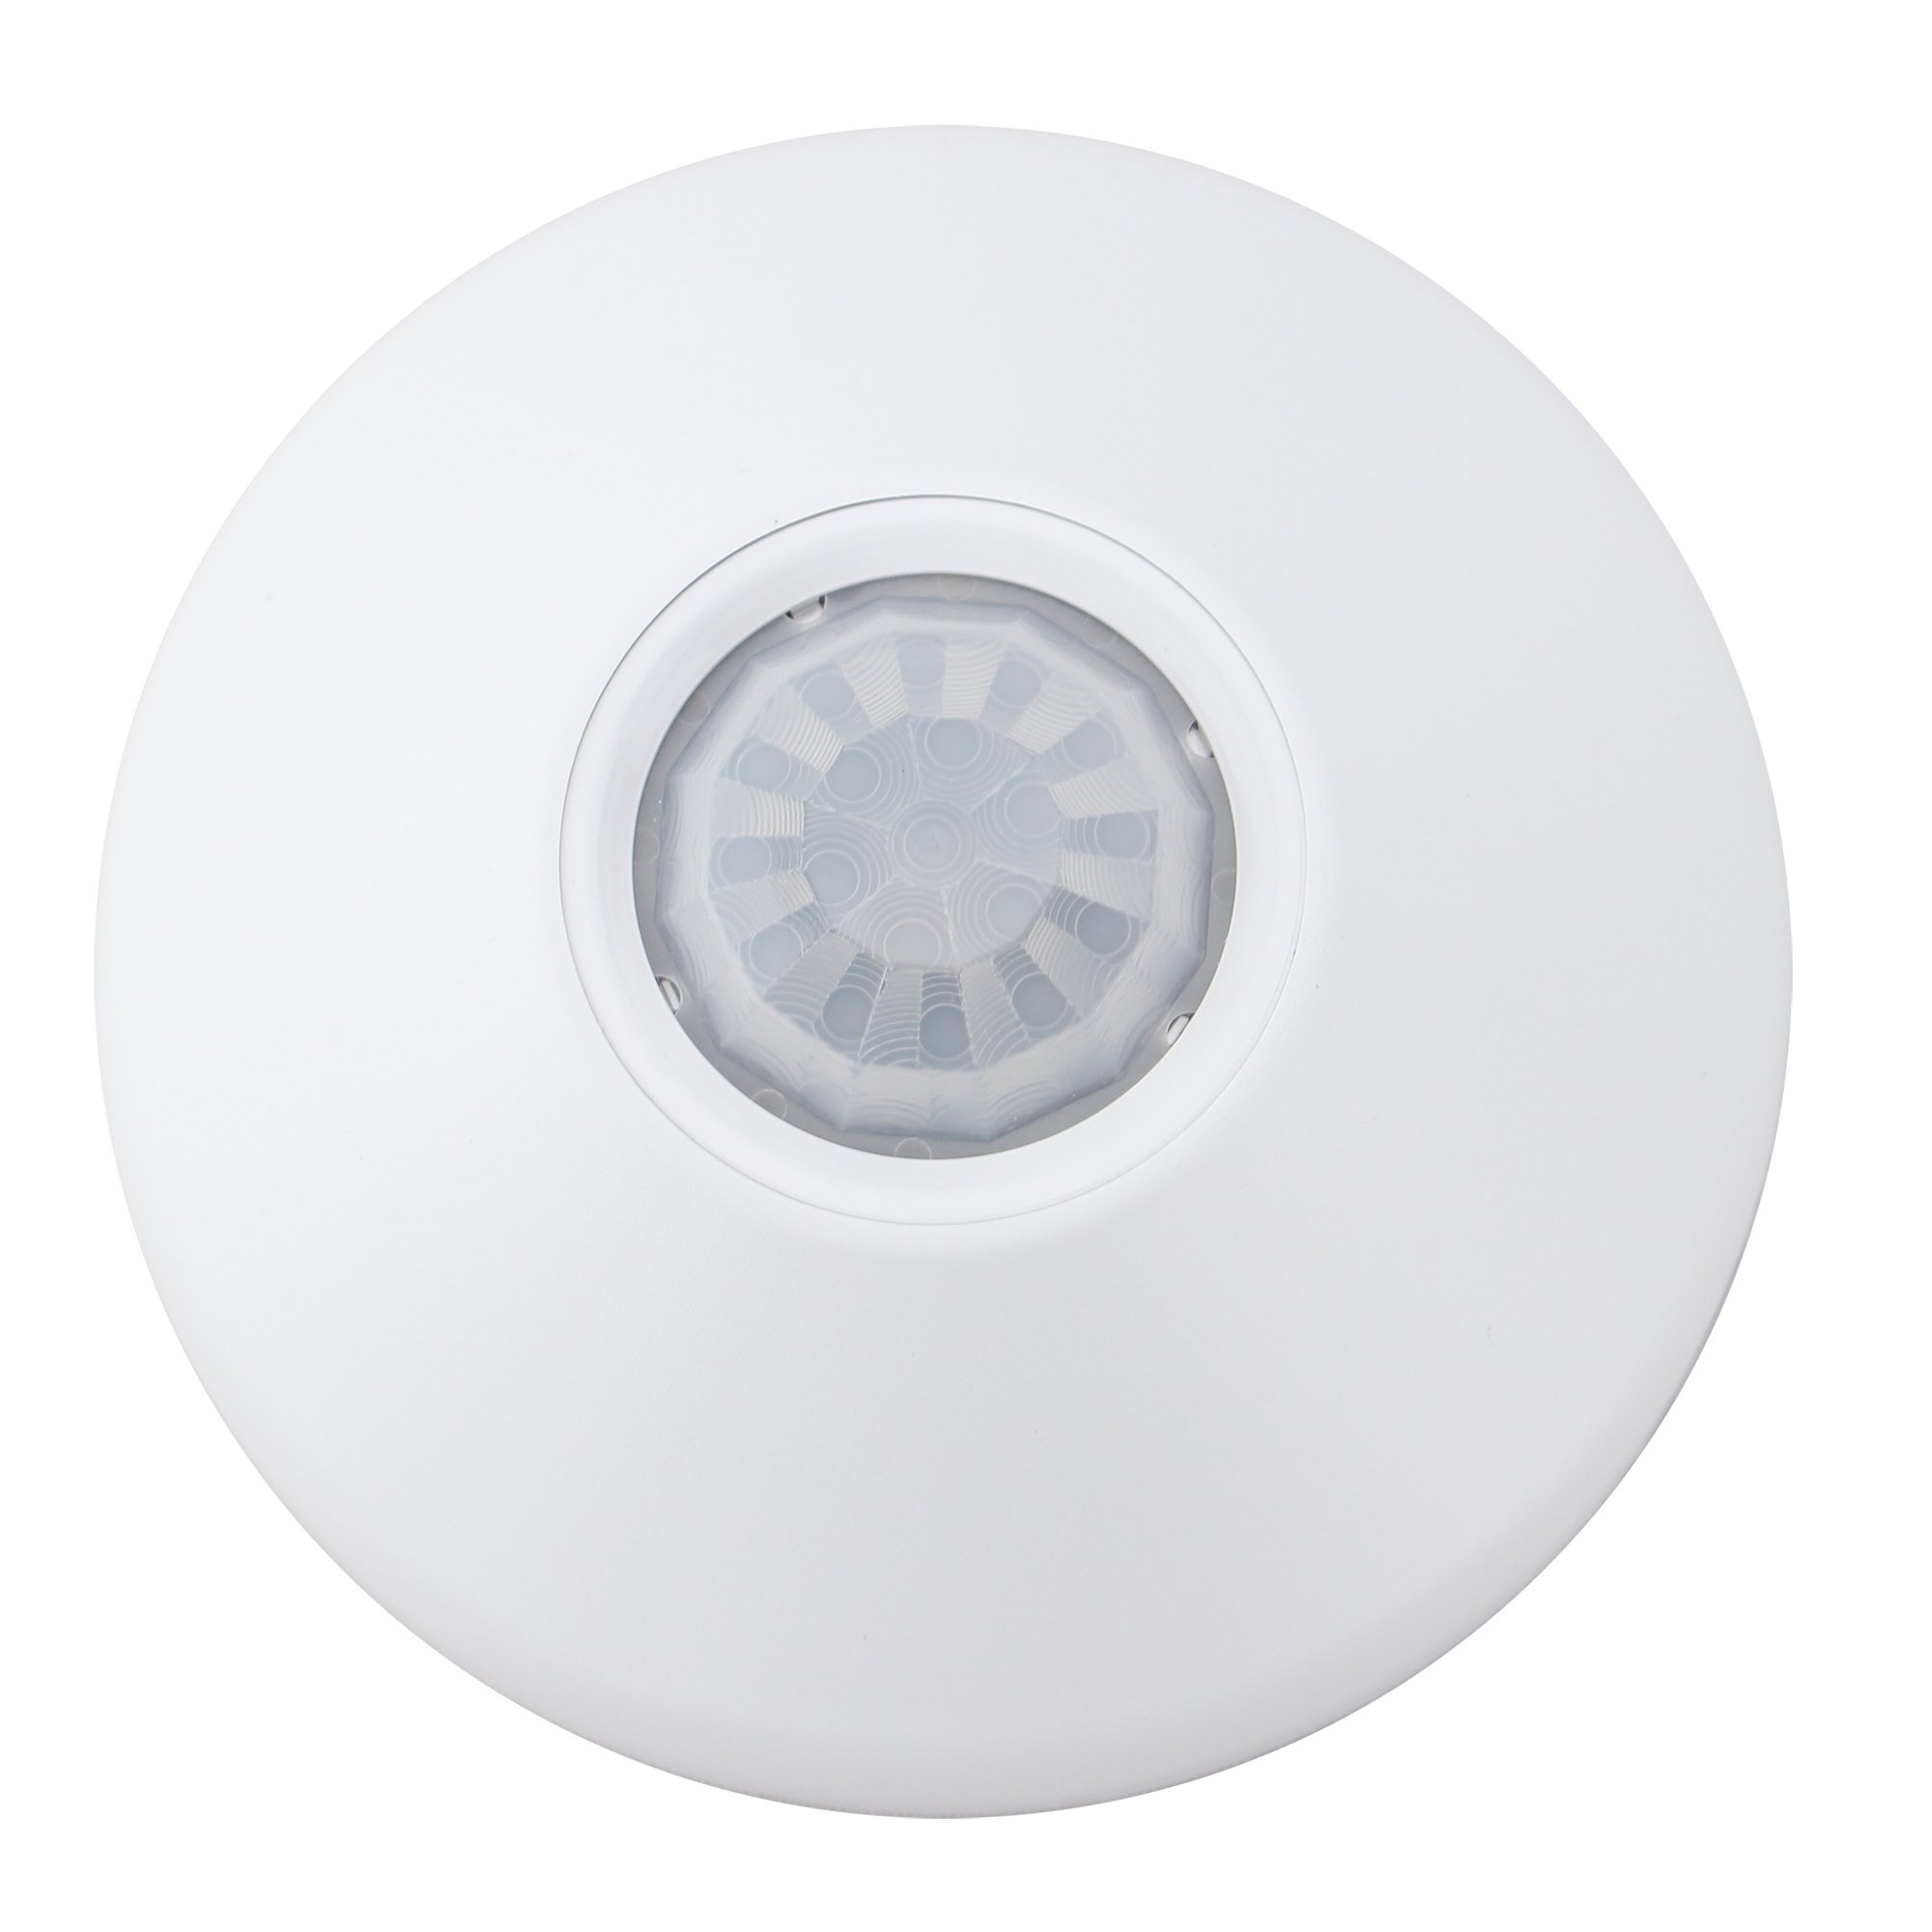 Lithonia Lighting/Acuity NCM-9 Standard Range Low Voltage Passive Infrared Occupancy Sensor 4.550 Inch Dia x 1.550 Inch Depth White